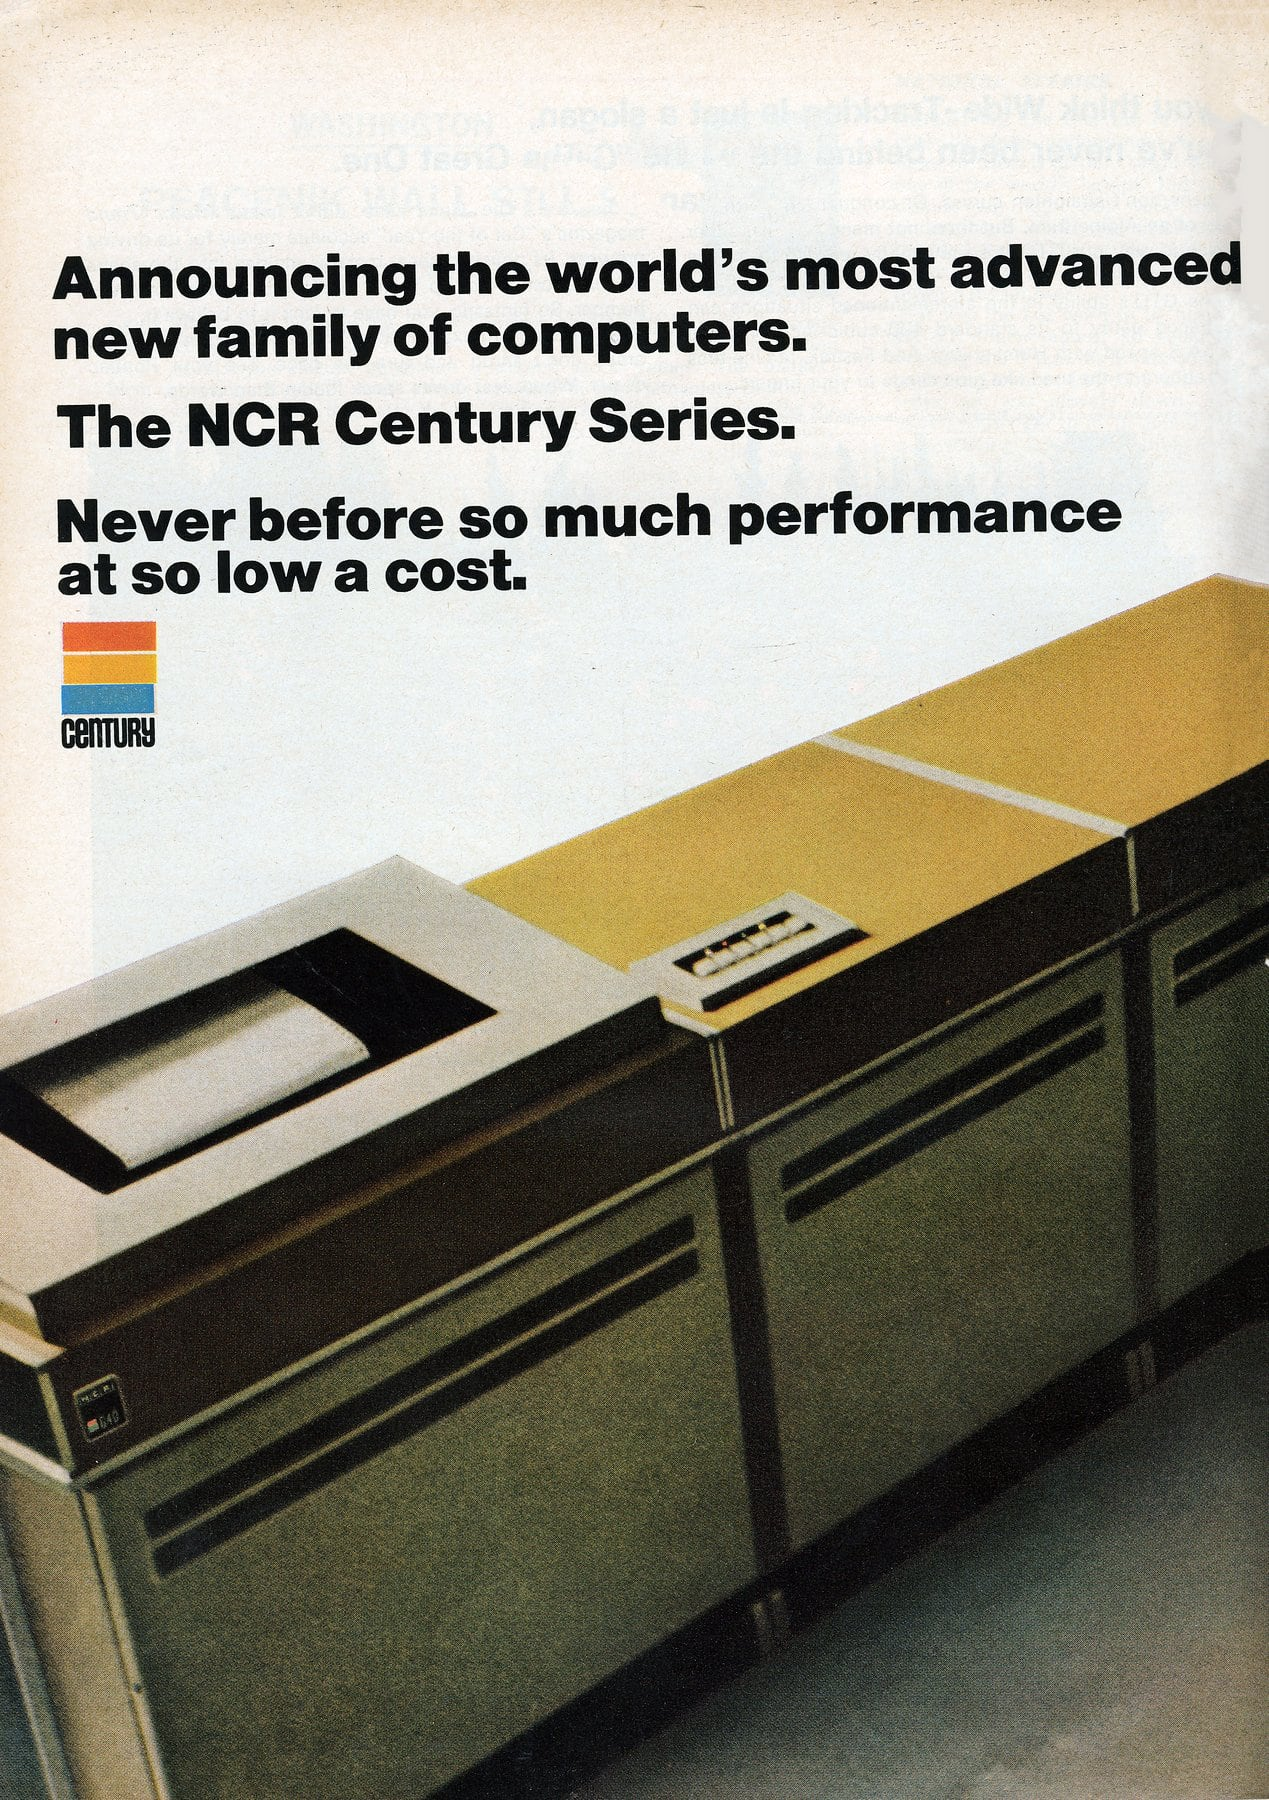 NCR Century Series business computers - March 1968 (1)